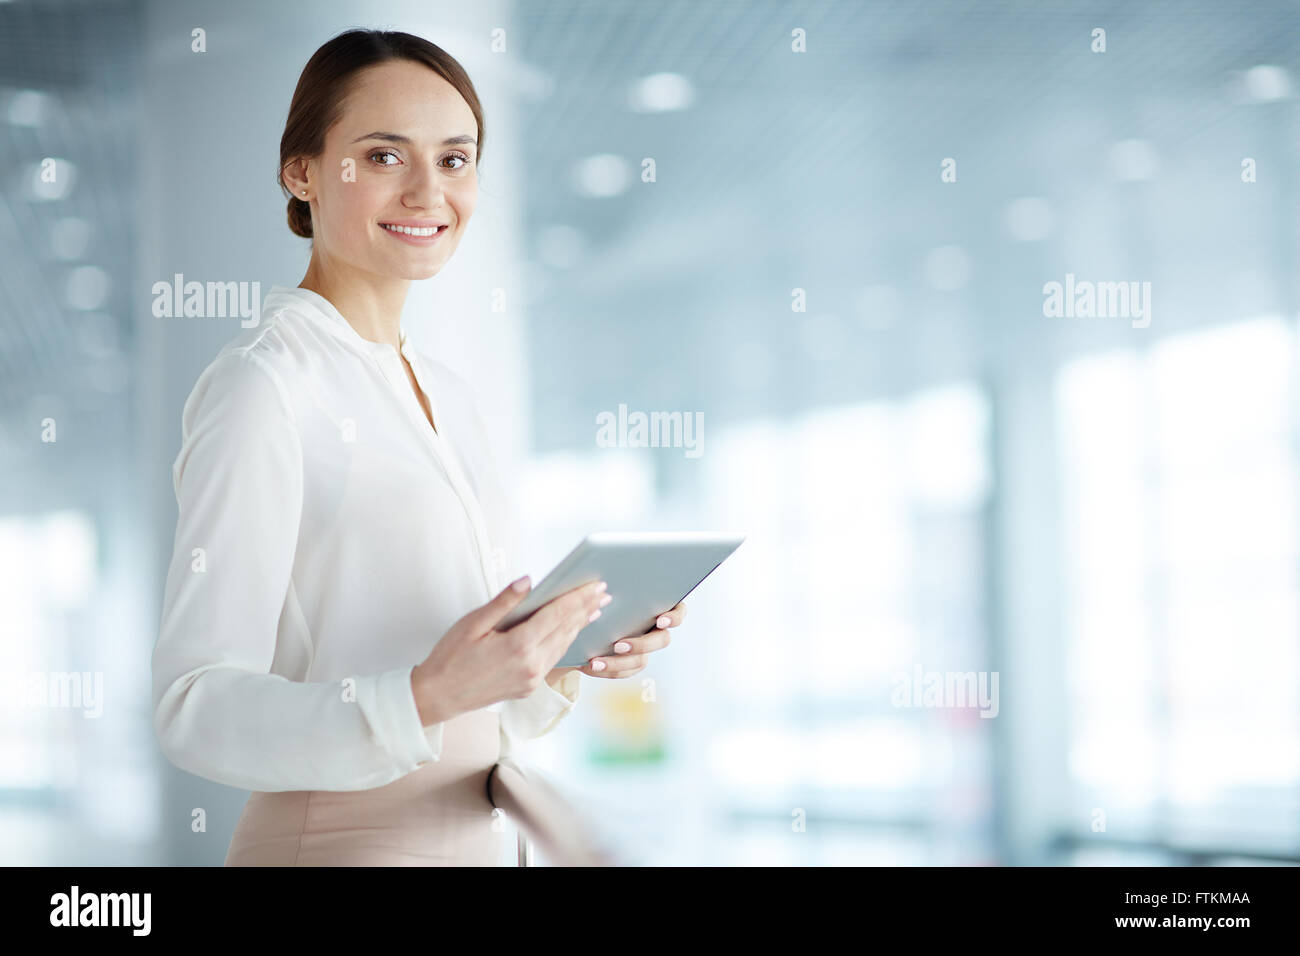 Mujer con touchpad Imagen De Stock